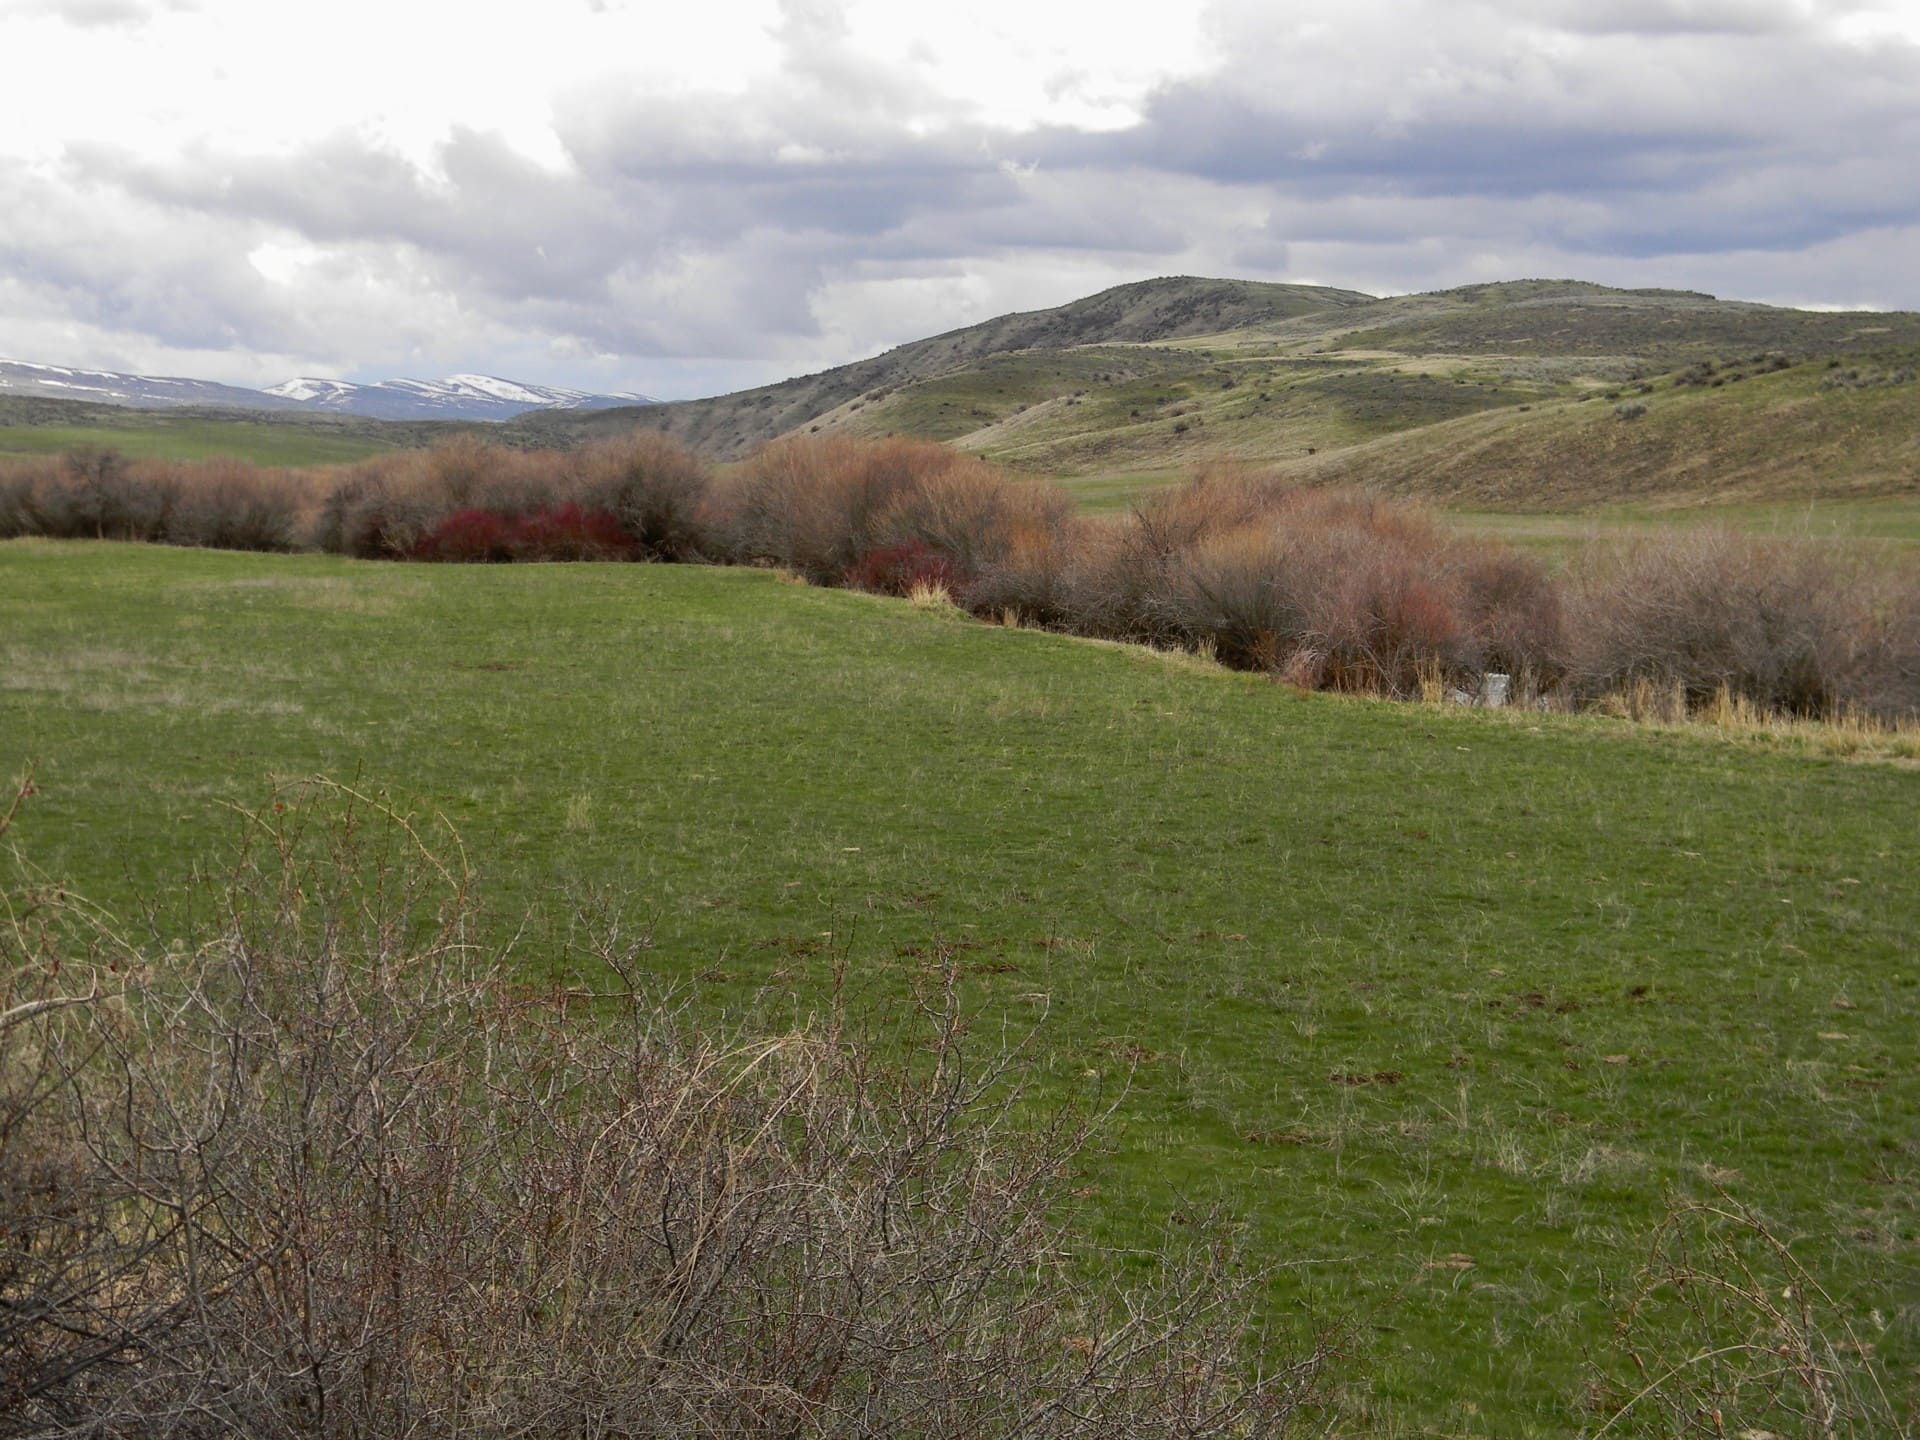 Grassy Meadow Idaho Silver Sage Ranch